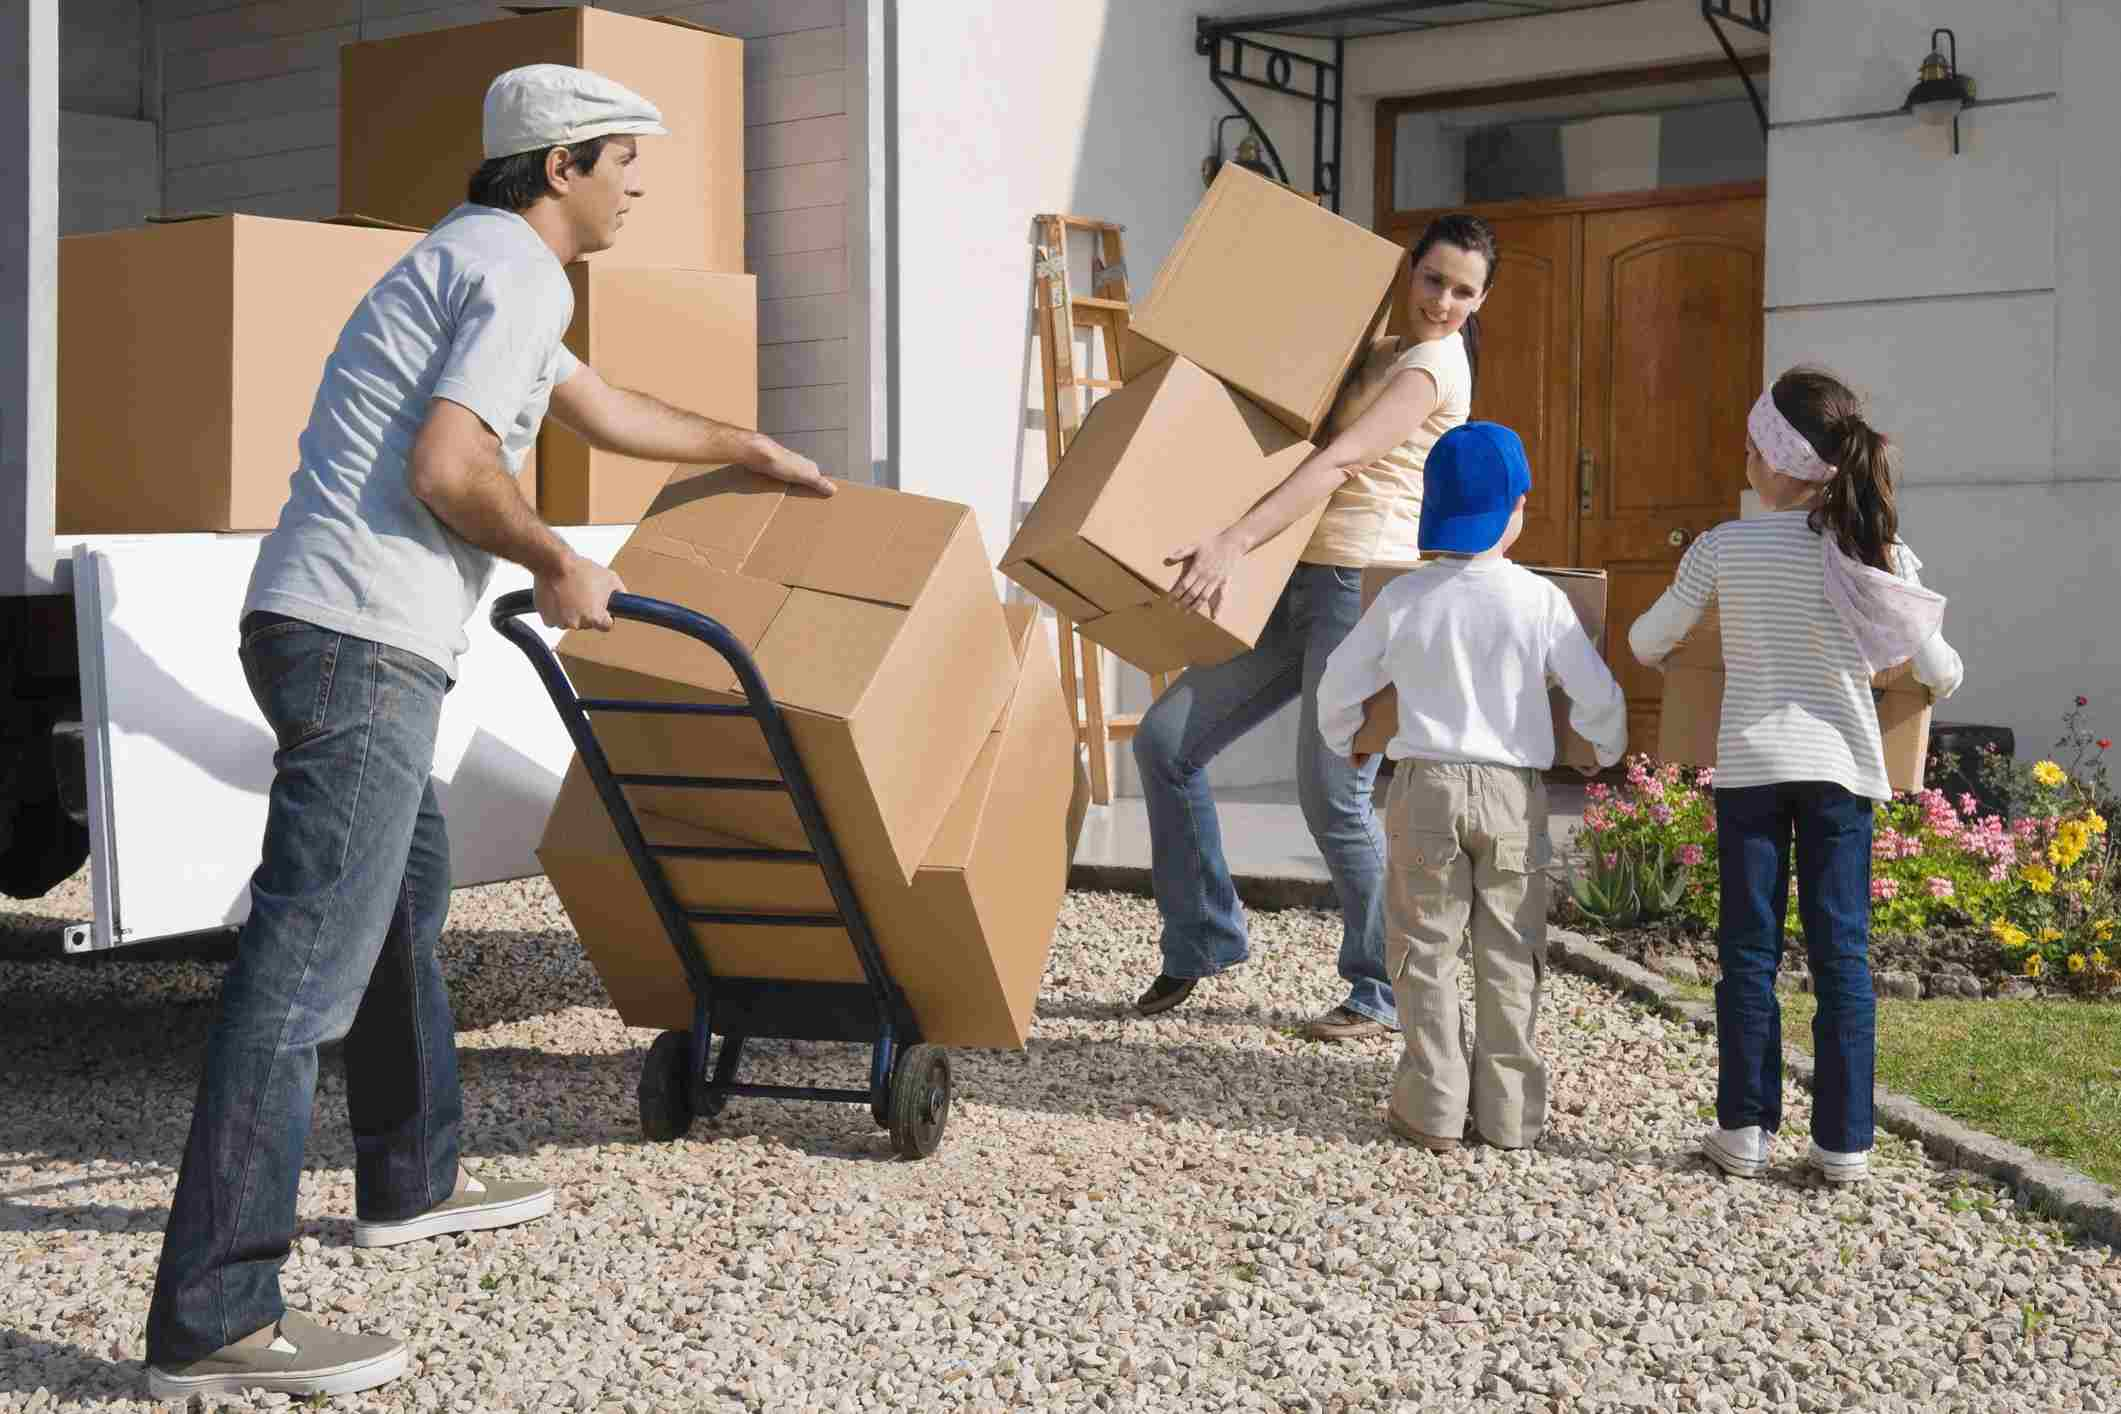 People unloading moving truck